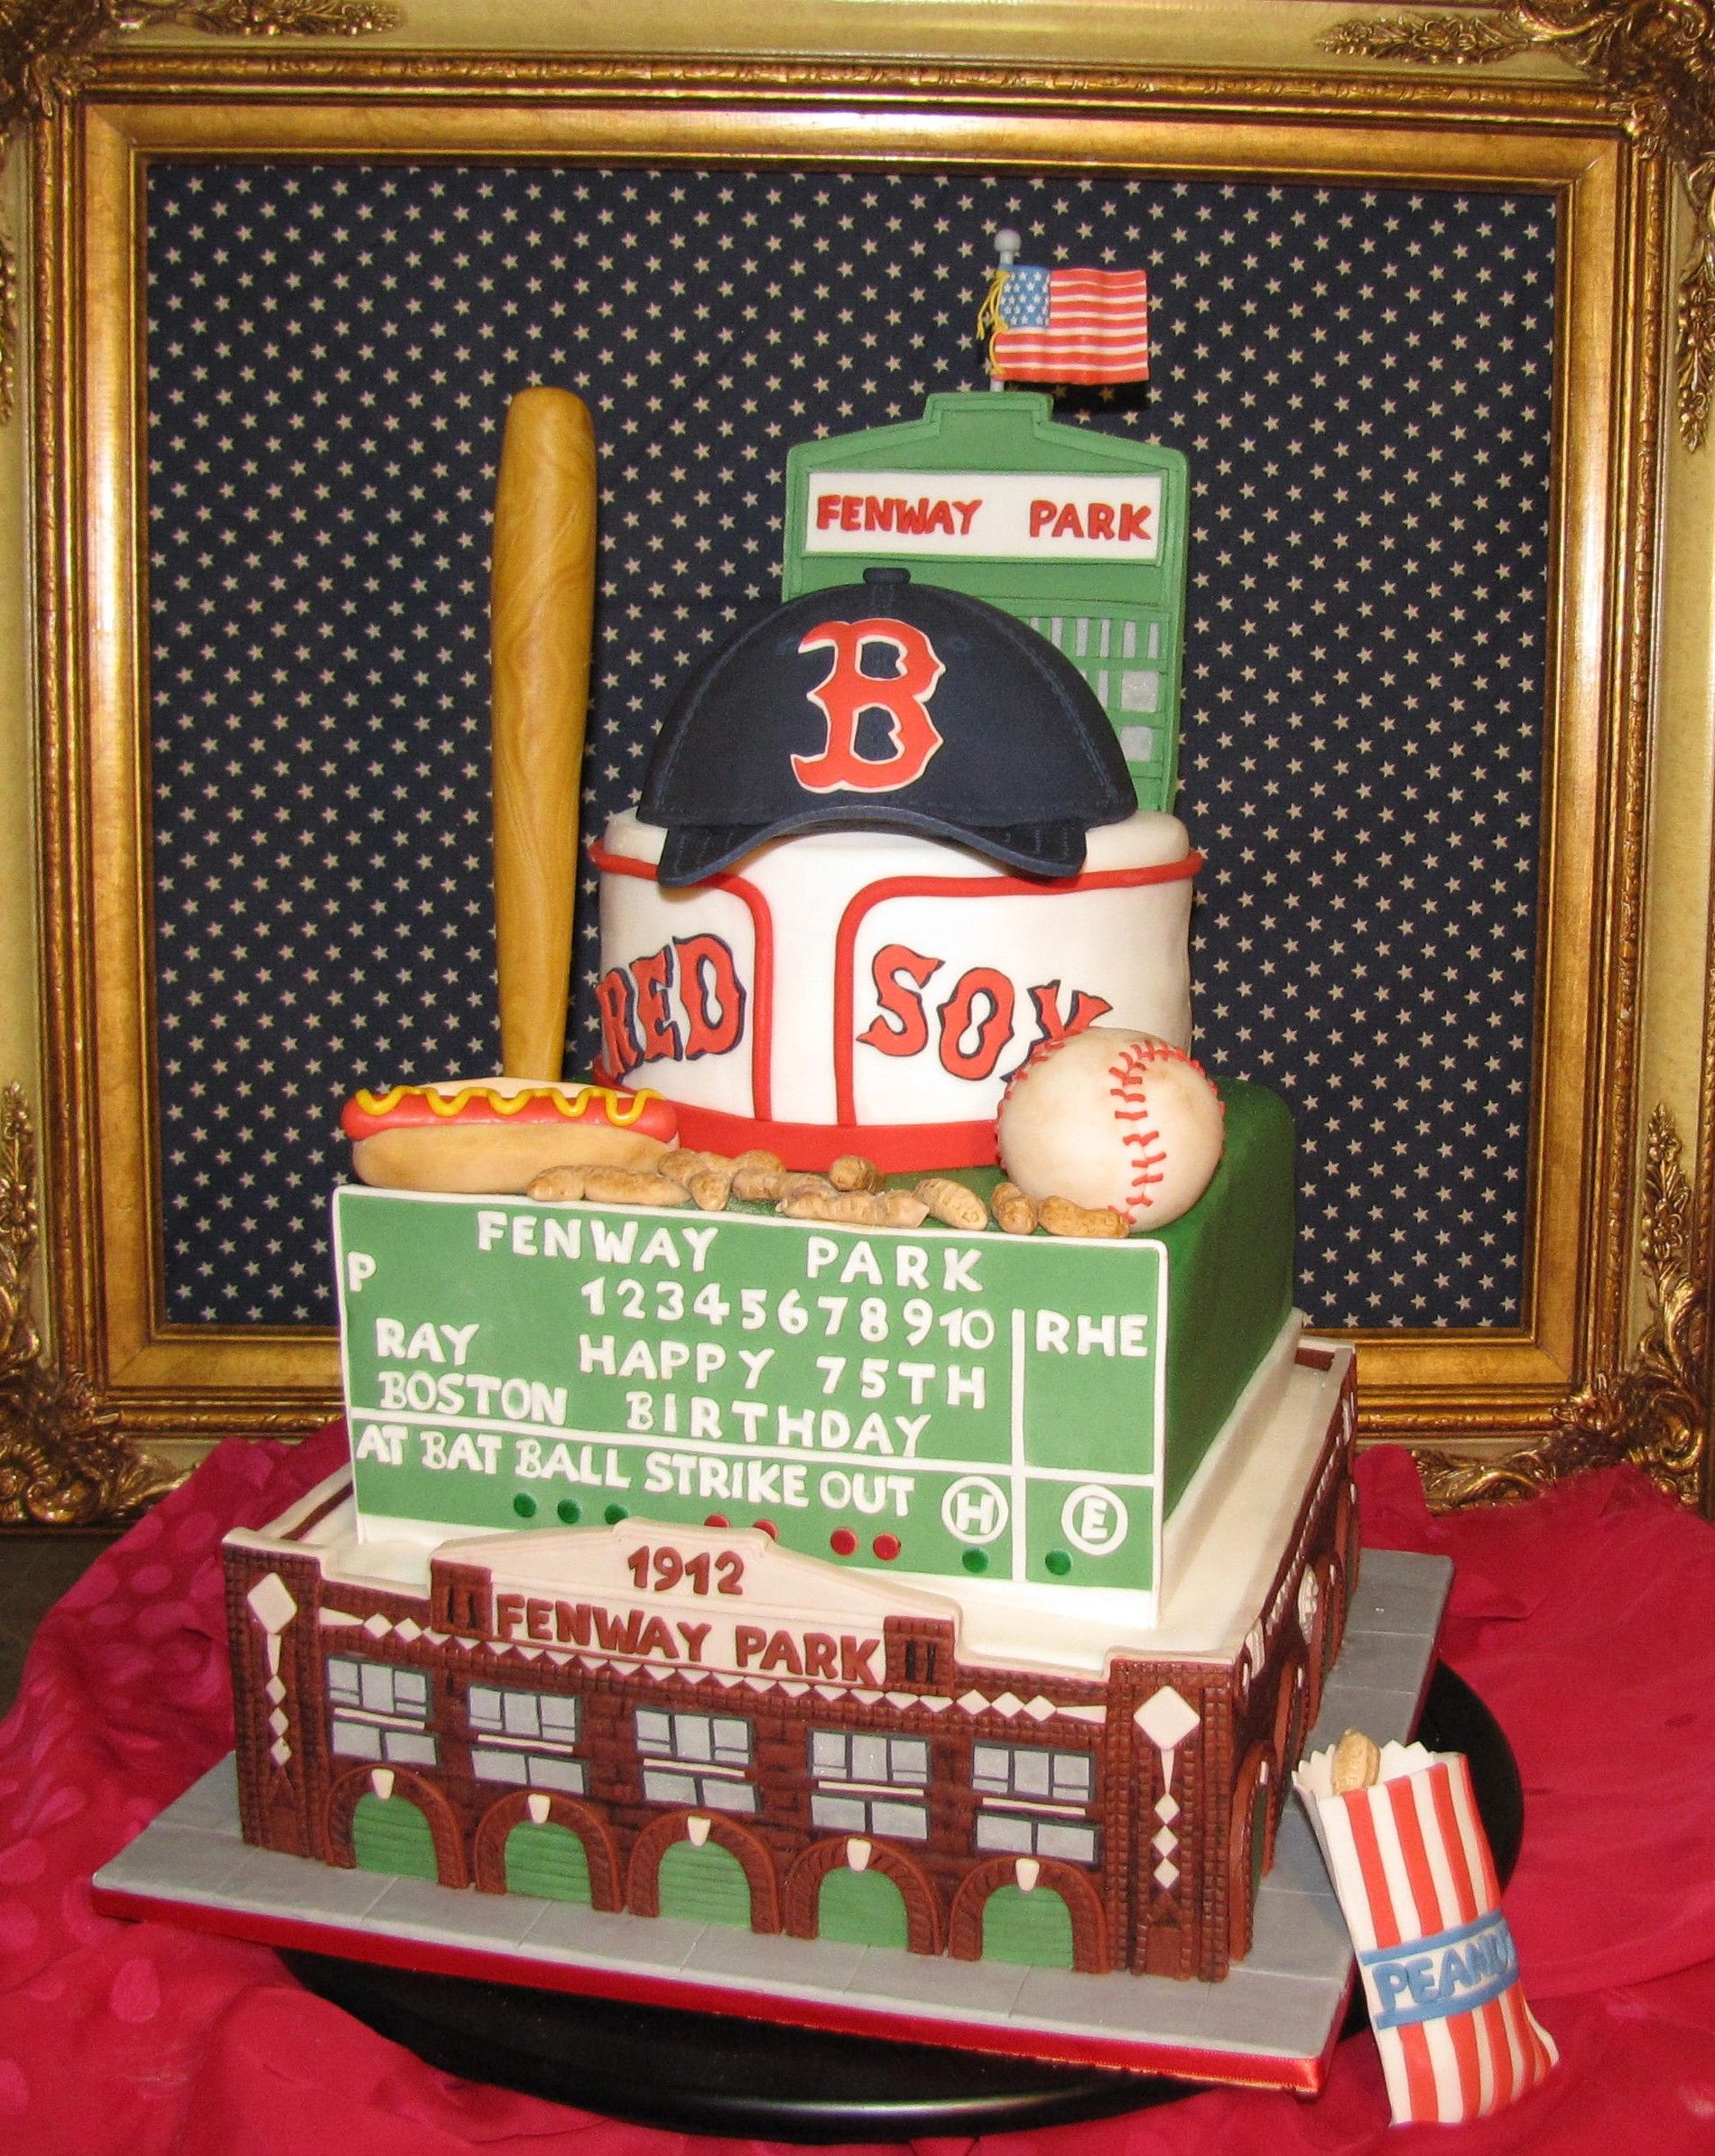 Baseball MLB 100 edible Fenway Park Baseball Stadium themed